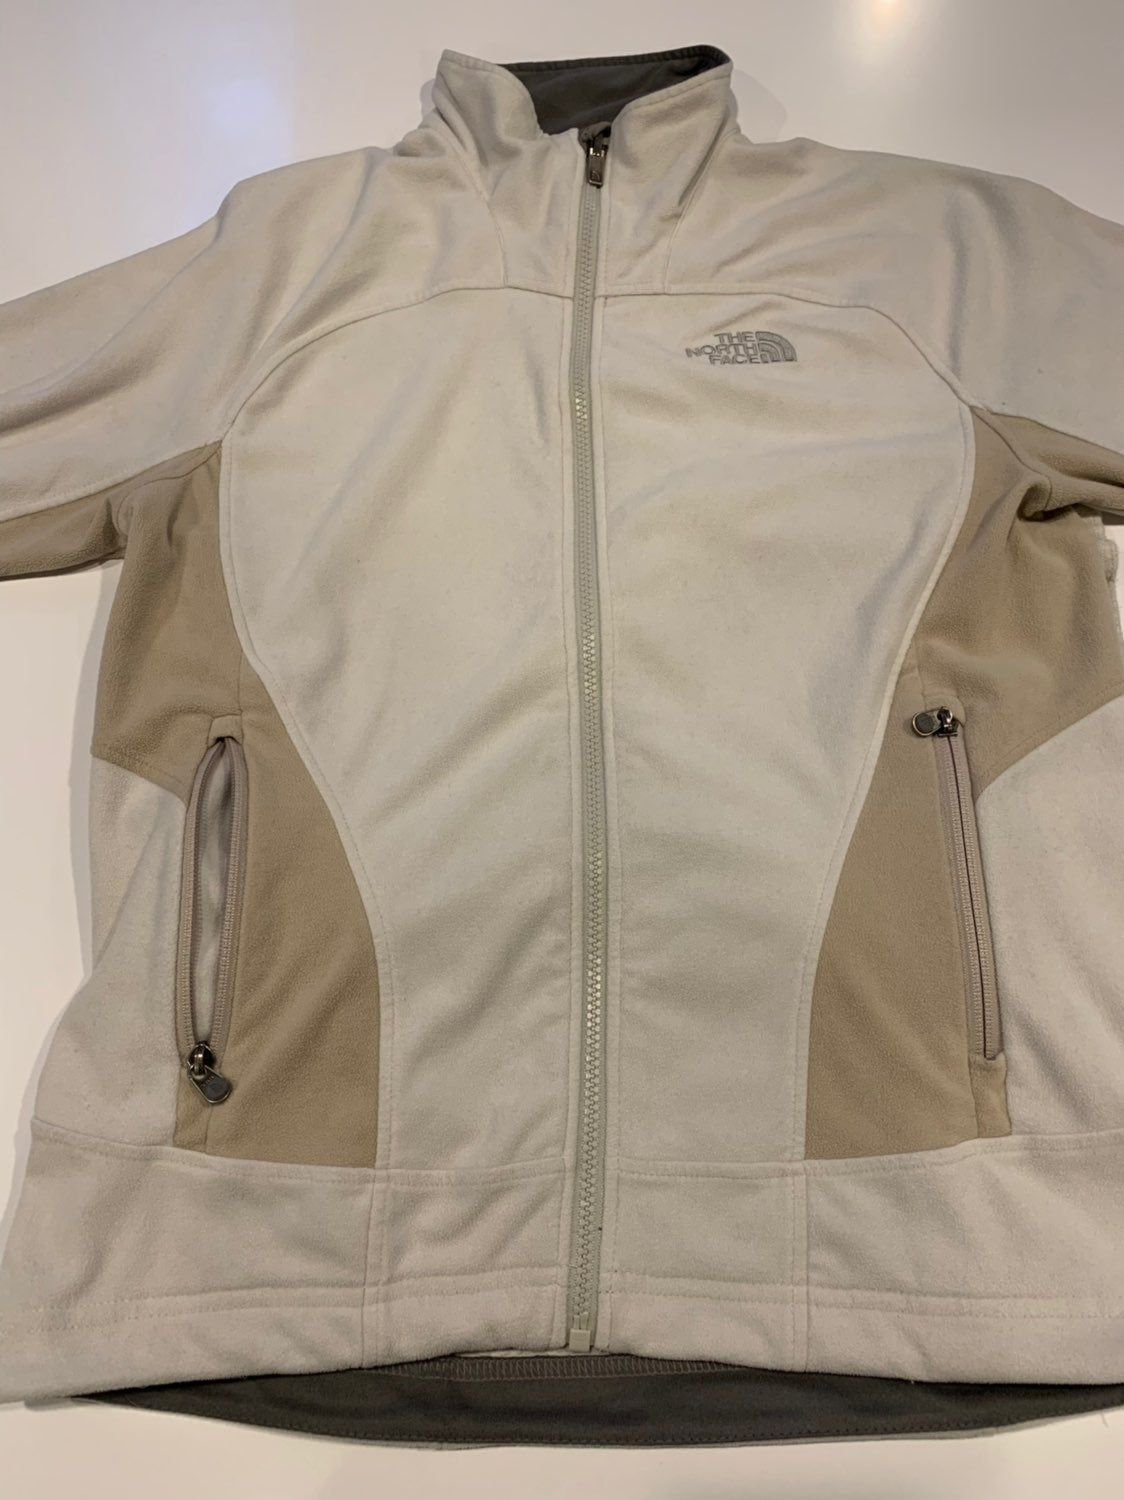 Women S Northface Cream And Tan Fleece Jacket Excellent Condition Size Medium No Defects Or Flaws Sta Fleece Jacket North Face Fleece Jacket The North Face [ 1500 x 1124 Pixel ]